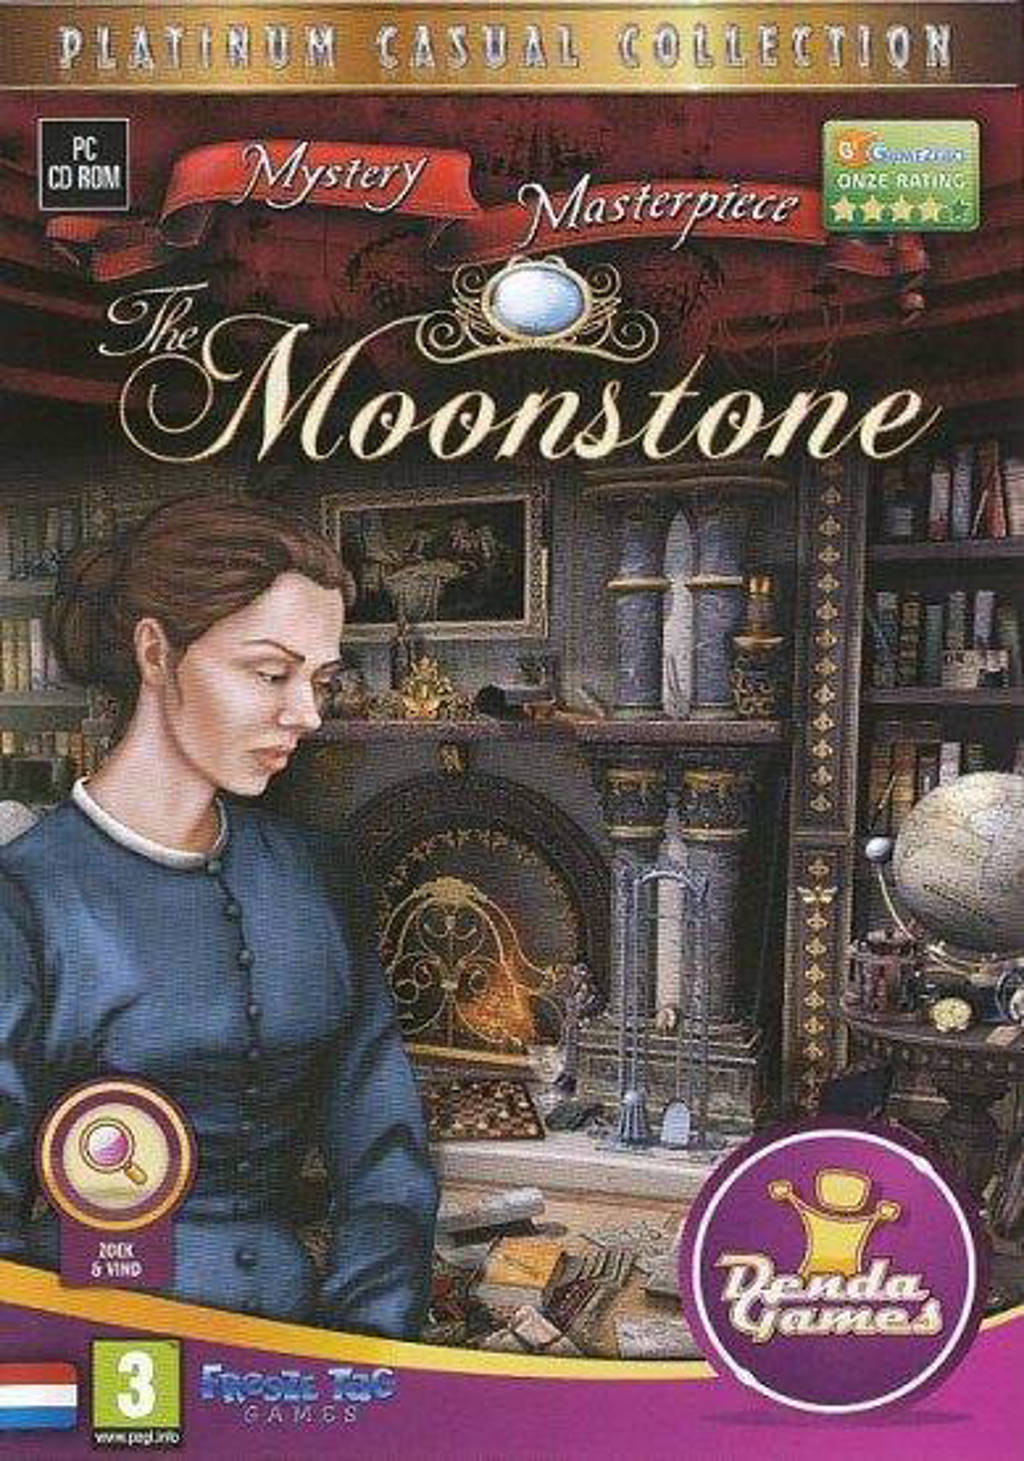 Mystery masterpiece - The moonstone (PC)